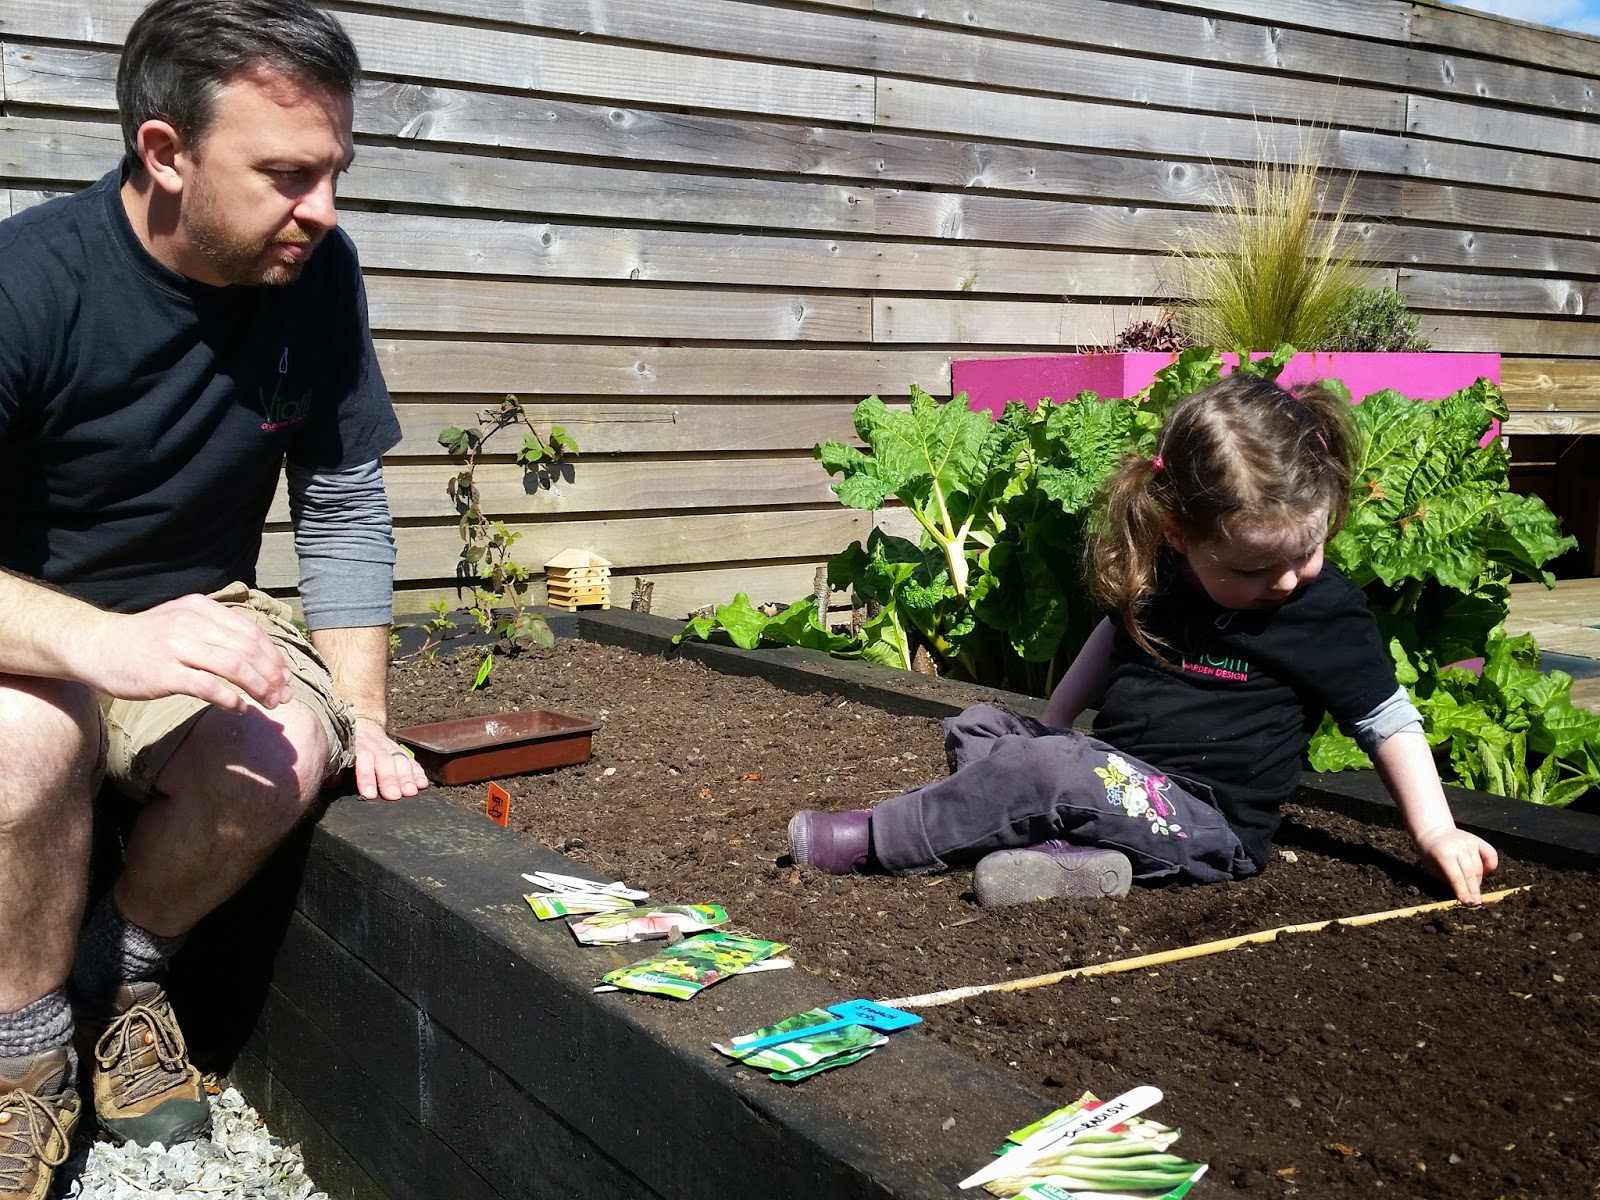 Prep your soil then sow your seeds in a nice neat row